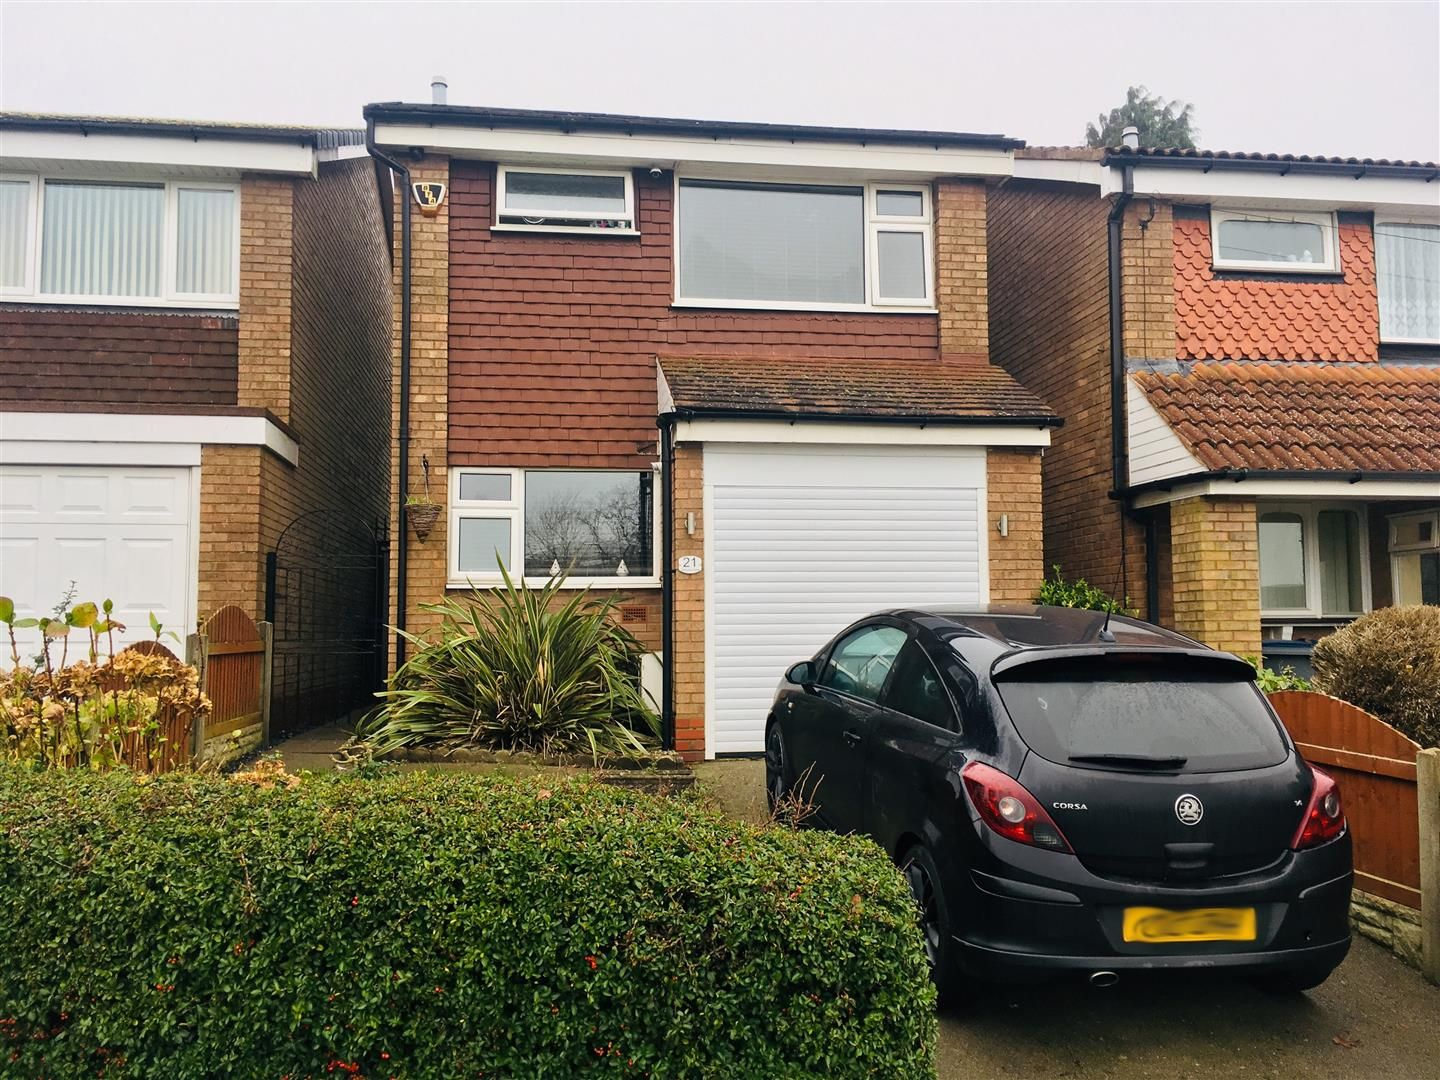 3 bed detached for sale in Bartley Green, B32